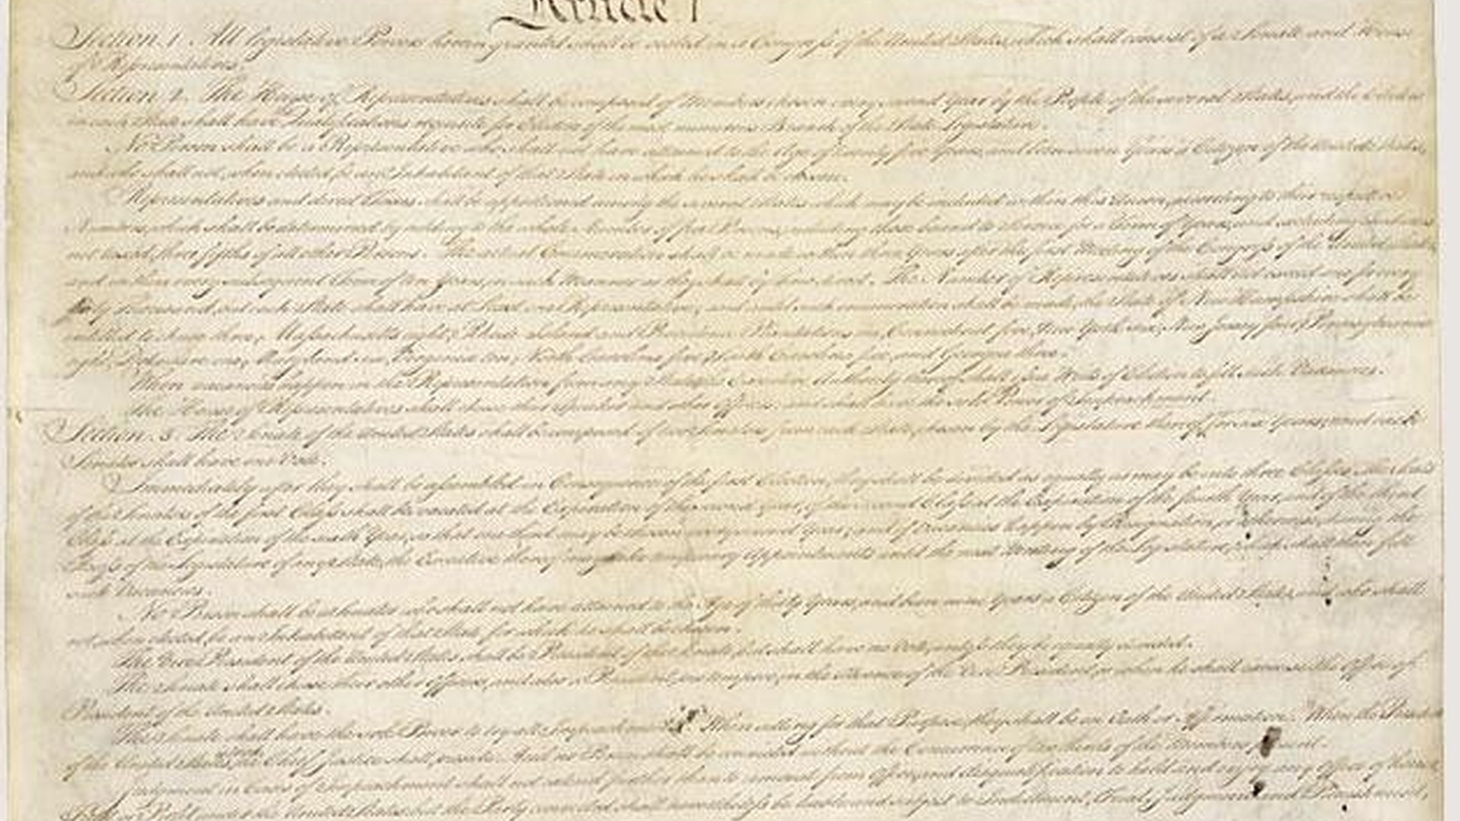 """Republicans now controlling the House claim the Constitution demands reductions in the size of government. Is America's founding document all that clear? We get a variety of opinions reflecting how open it is to different interpretations. Also, Obama's economic team and unemployment, and """"citizen scientists"""" outclass computers."""